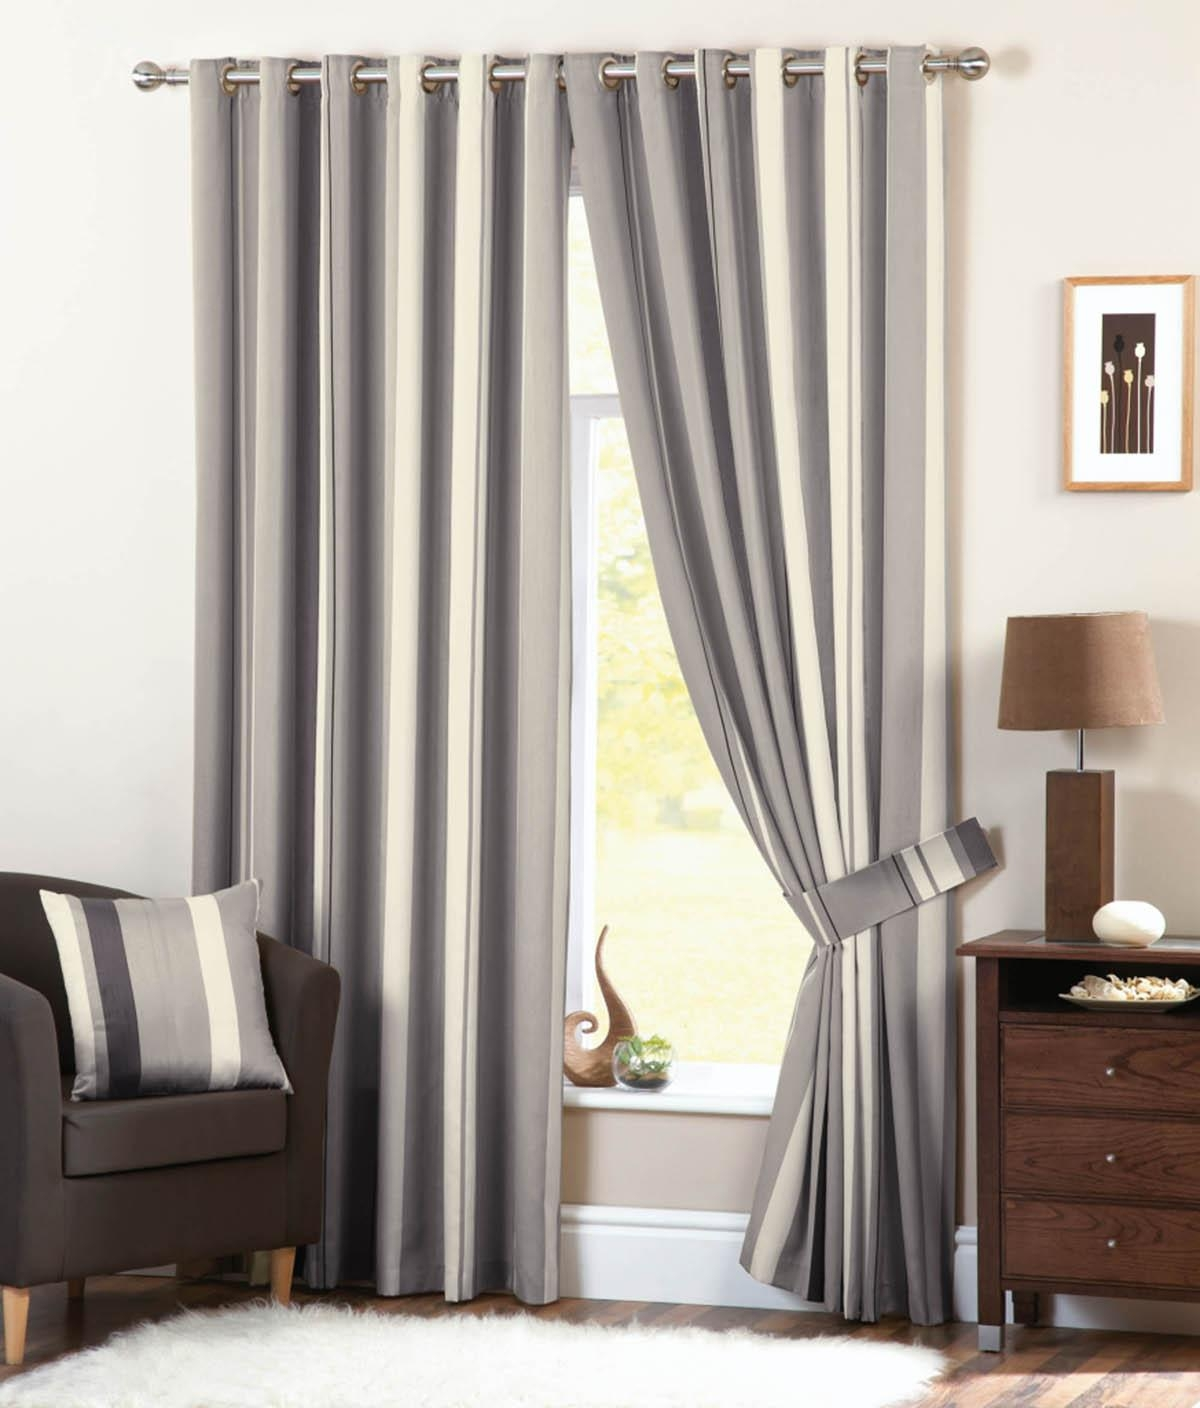 Whitworth Eyelet Curtains Silver Free Uk Delivery Terrys Fabrics With Grey Eyelet Curtains (Image 25 of 25)